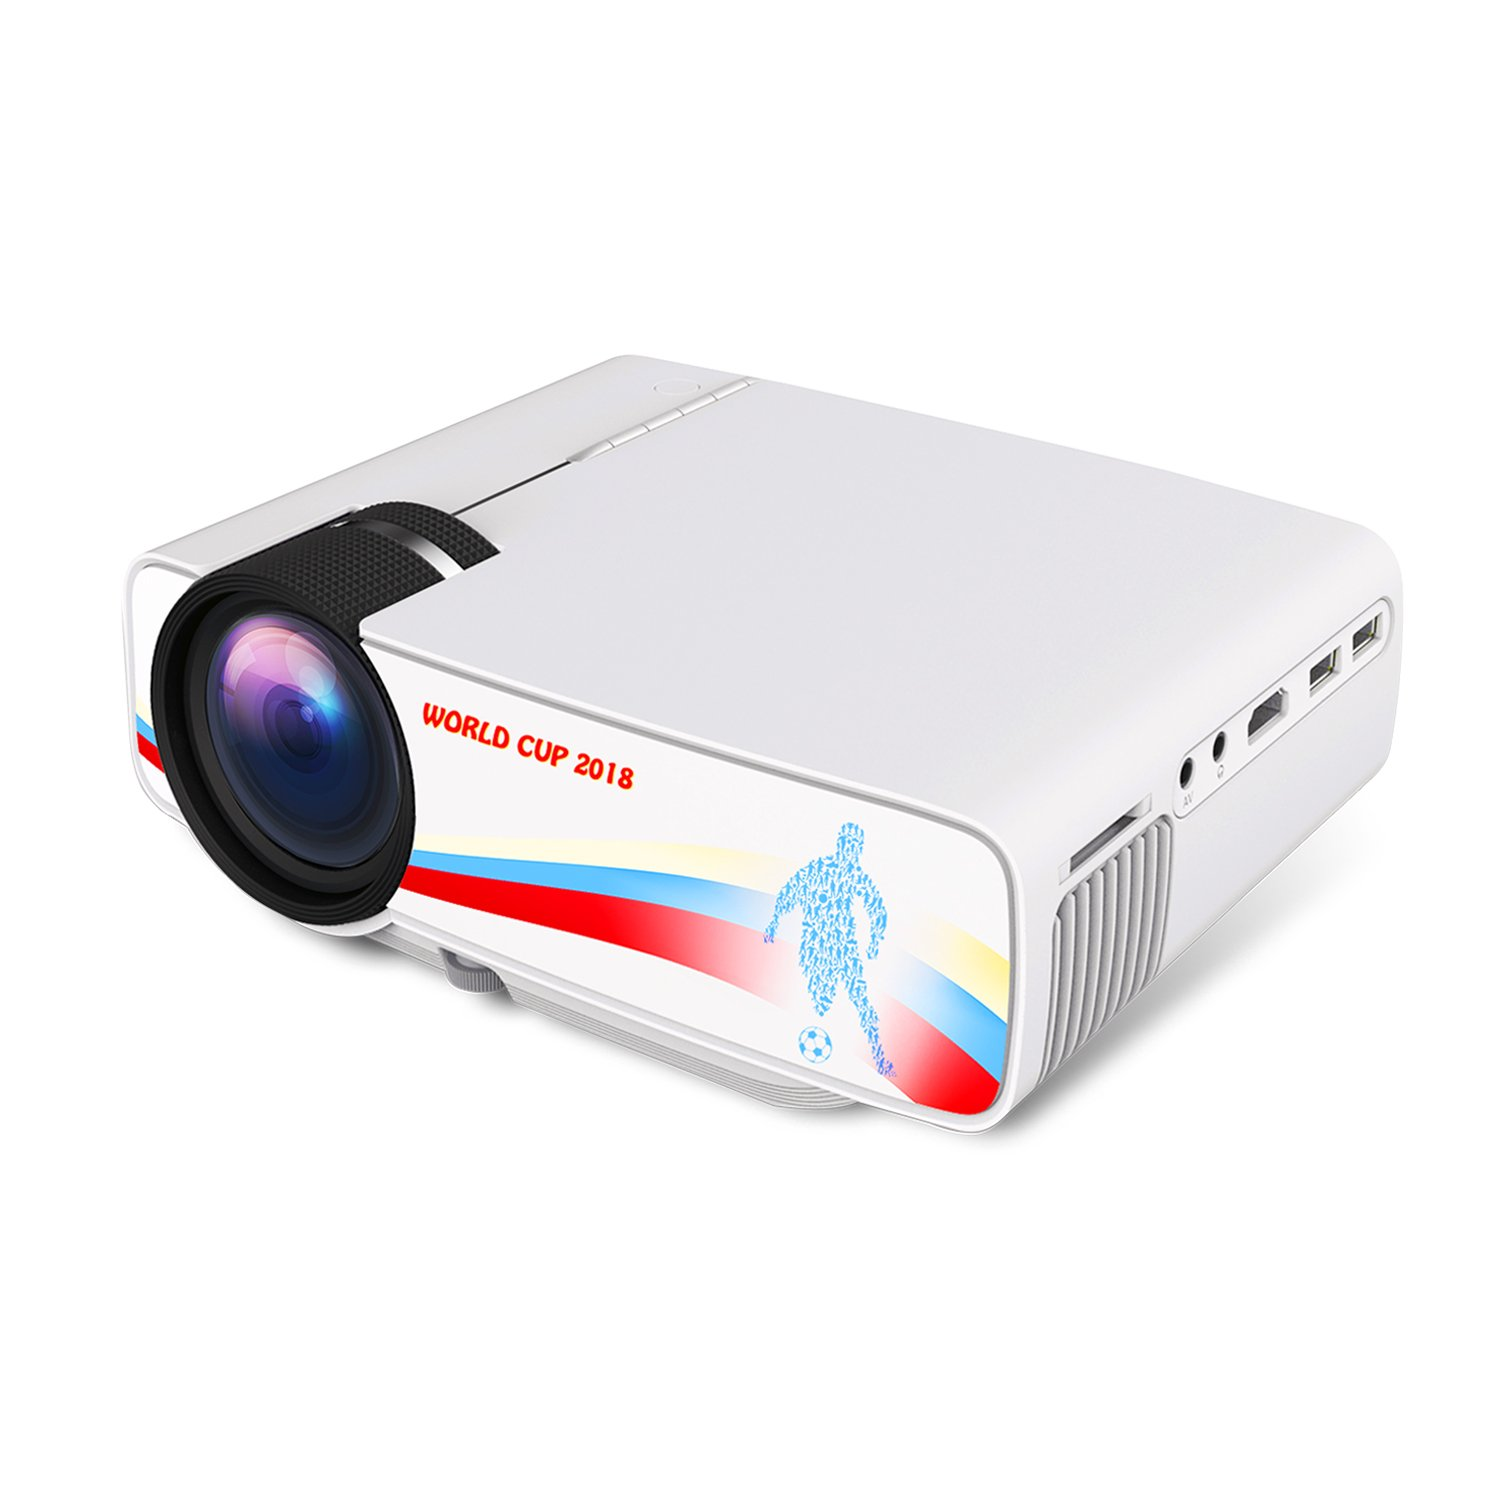 Video Projector Mini Portable Projector Laptop Home Theater System projectors LED Full HD 1080P Movie Screen Sports TV DVD Smartphone Projector with HDMI USB VGA AV for iPhone Andriod Ipad PS4 Camera by Beamerking